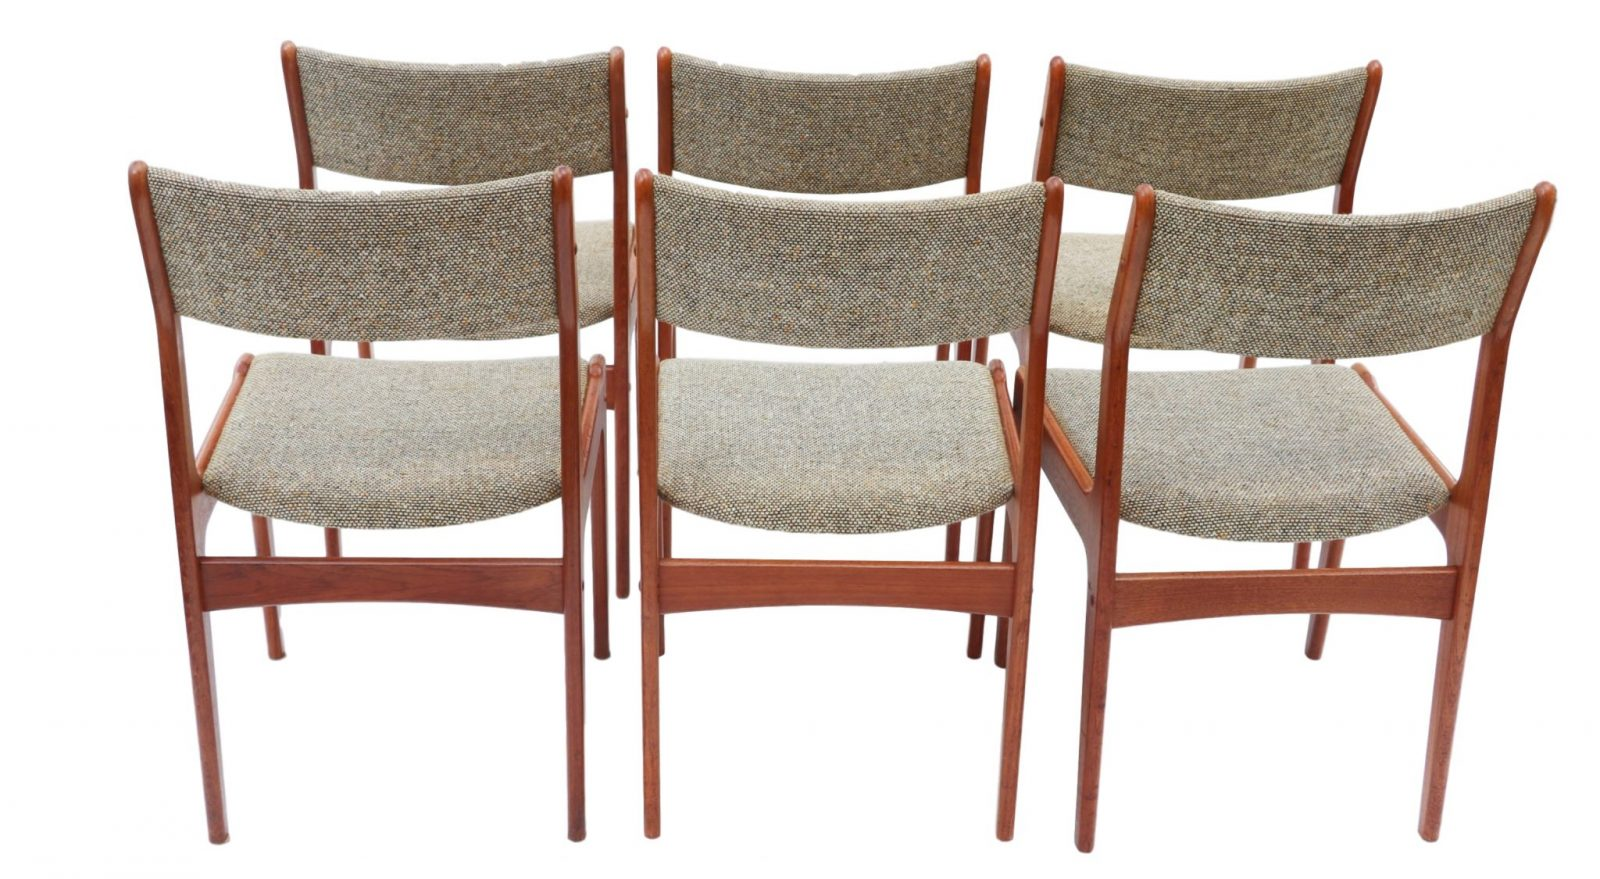 Six Scandinavian Teak Danish Dining Chairs. Crown Molding. Address Numbers For House. Spanish Colonial Revival. Adjustable Bar Stool. Bed Scarf. School Years Picture Frame K 12. Slate Ge Appliances. Shingle Style